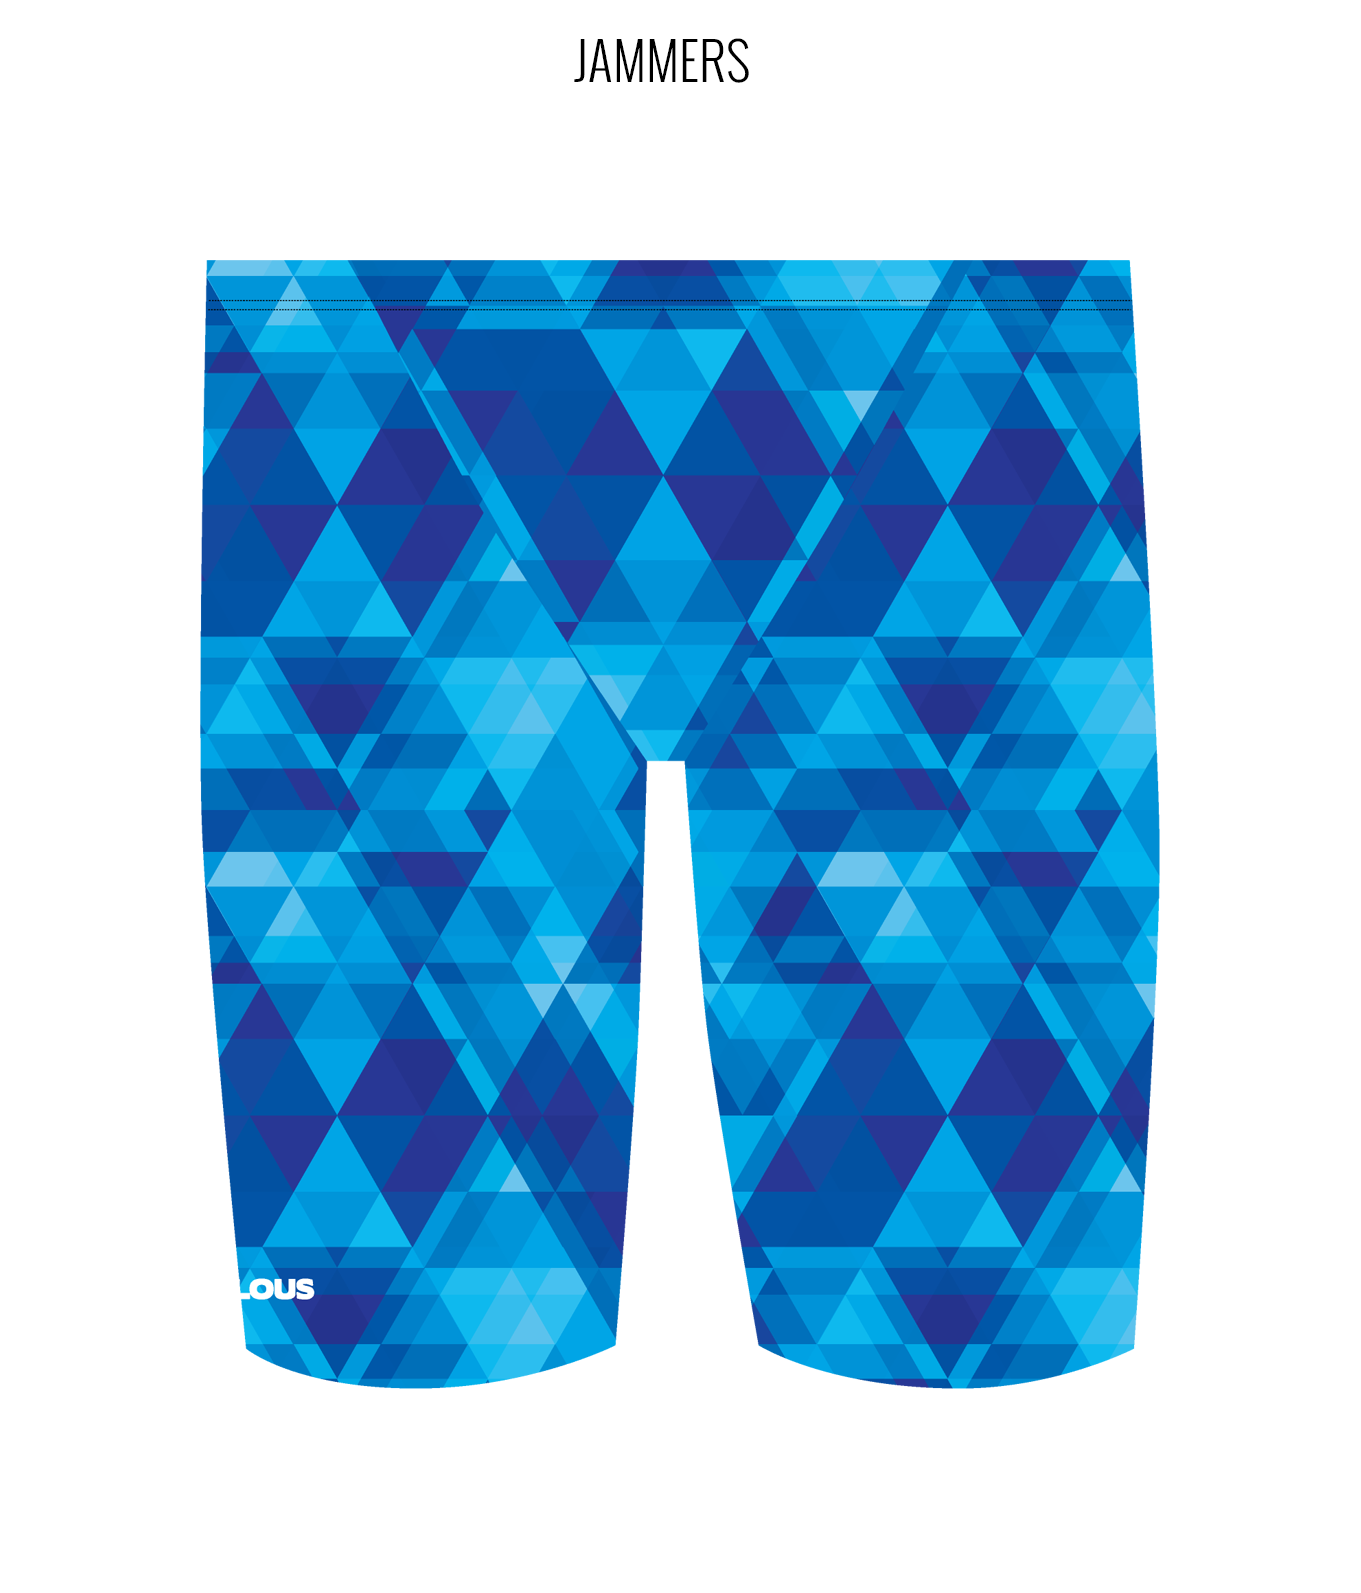 IMPACT ZONE - MALE Personalised Swimwear - Shop Zealous Training Swimwear